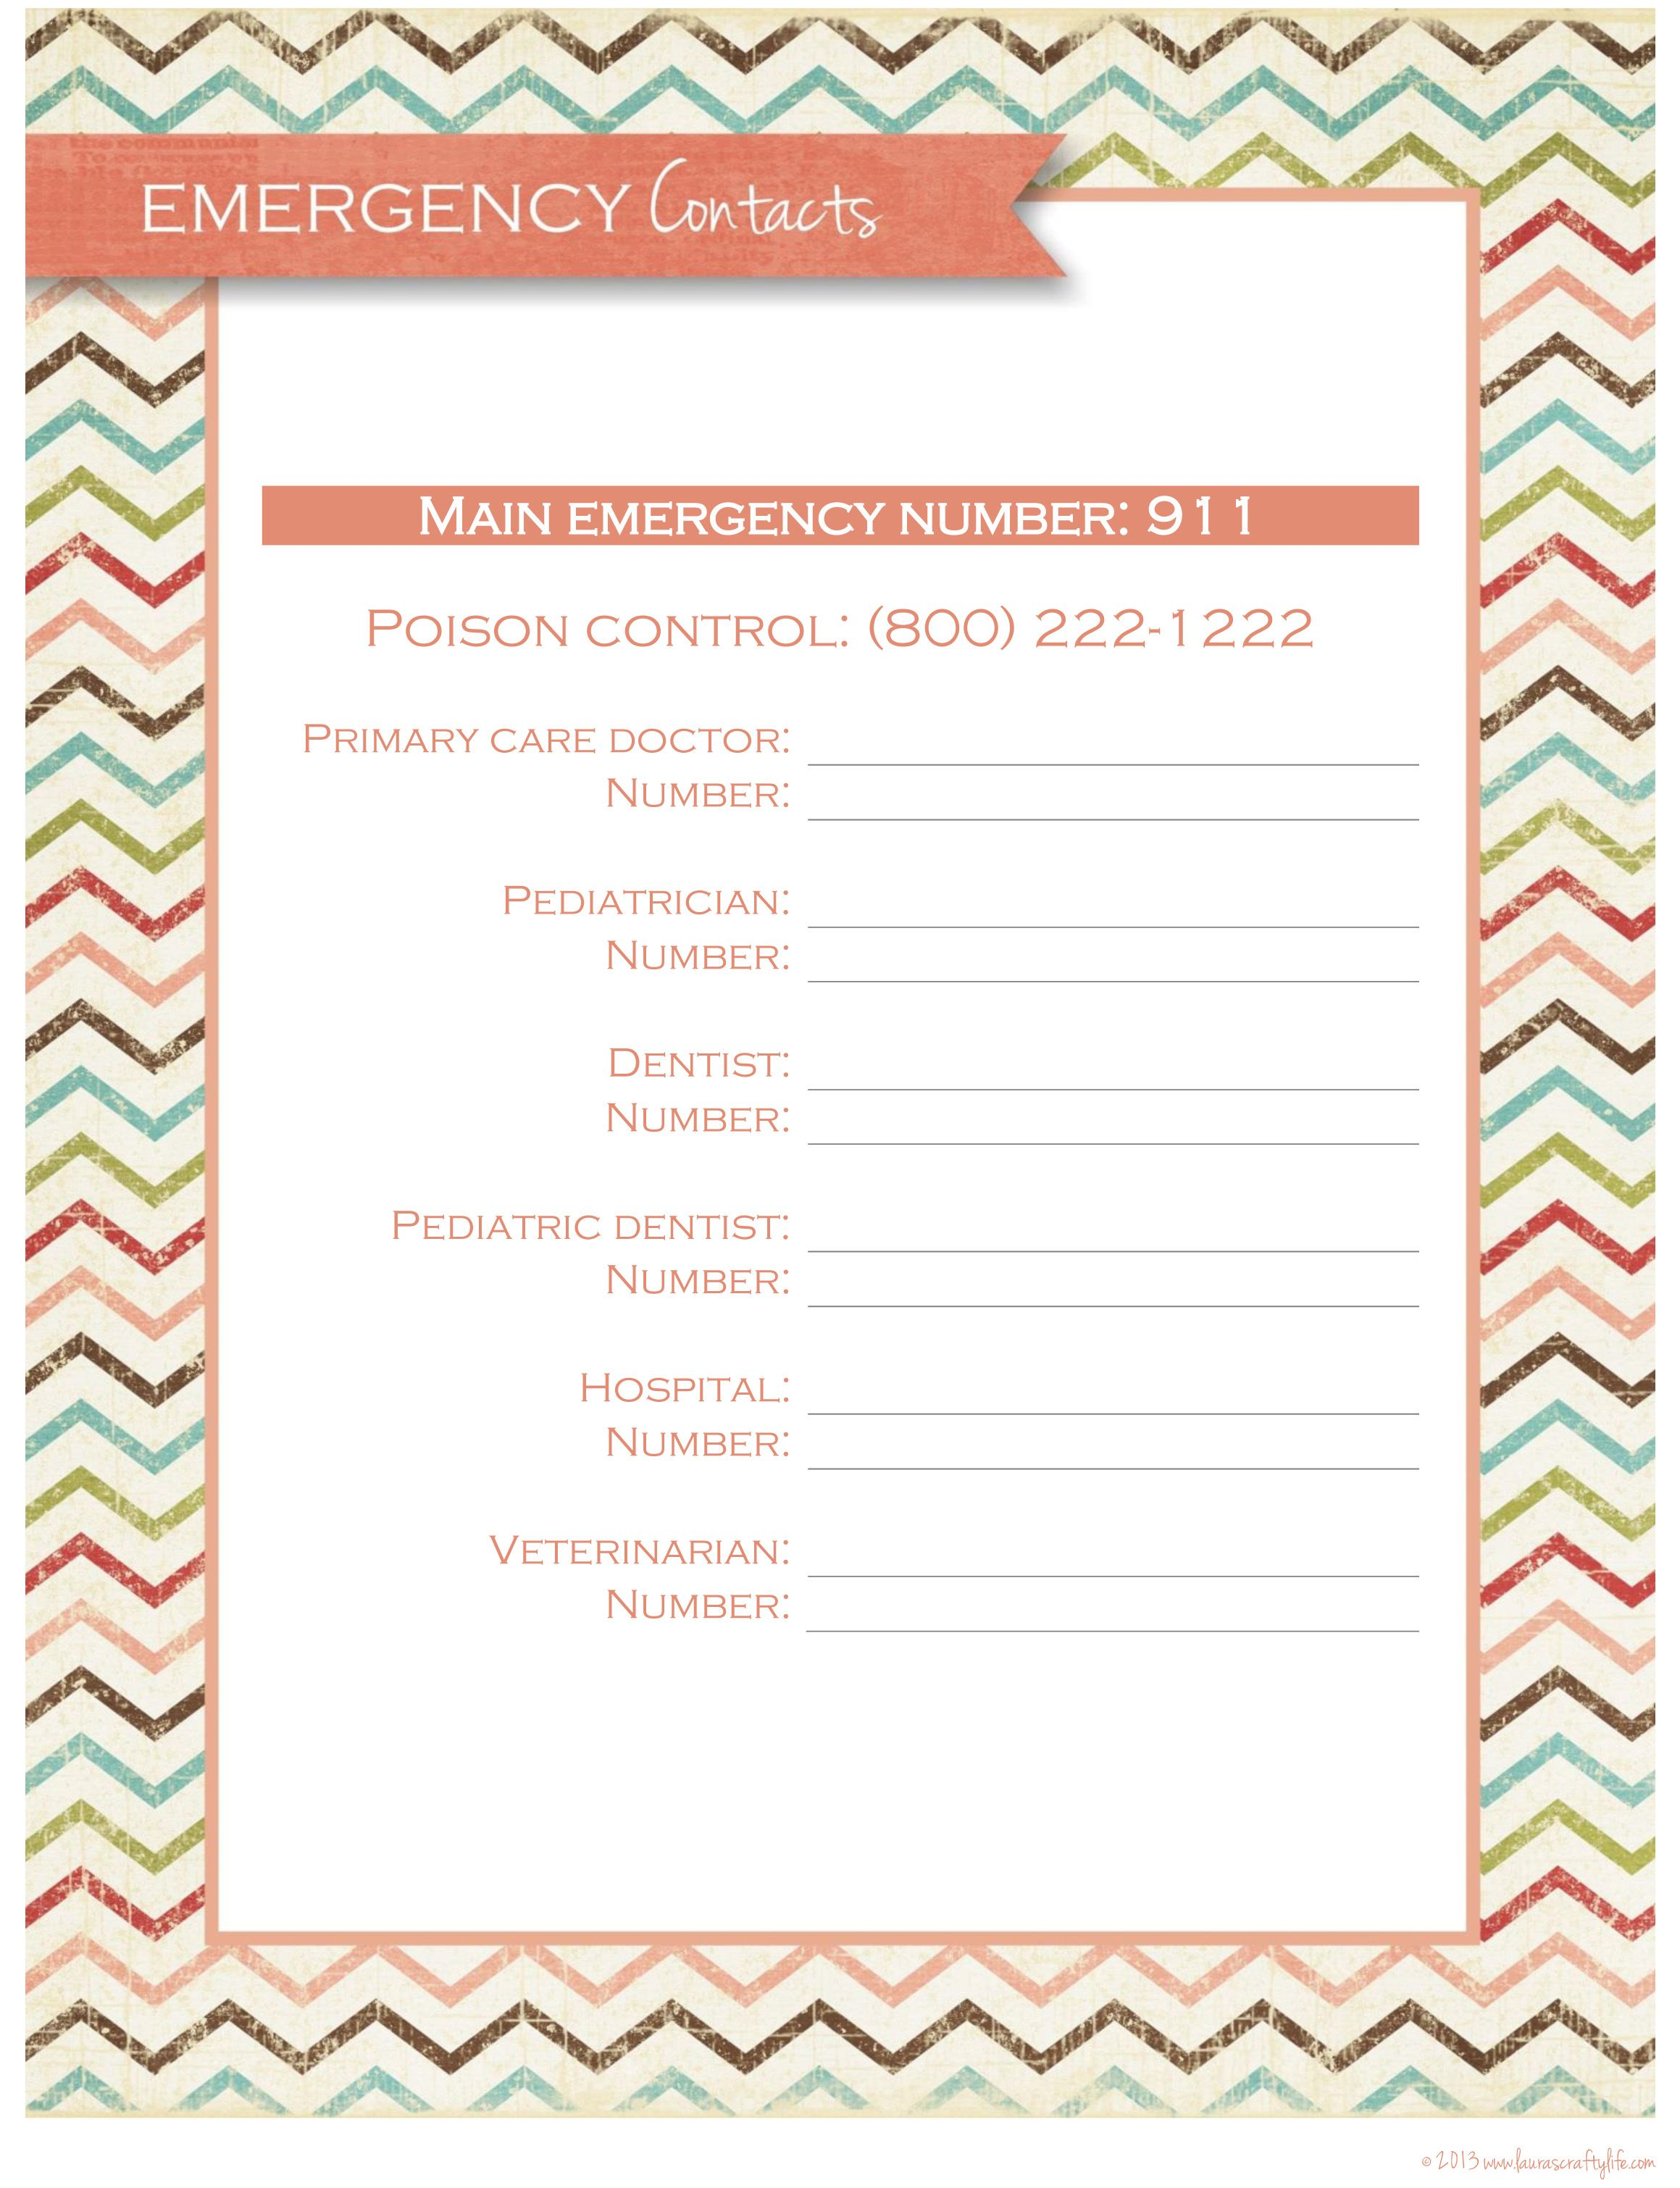 Day 2 Emergency Contact Sheet Home Management Binder Emergency Contact Homemaking Printables